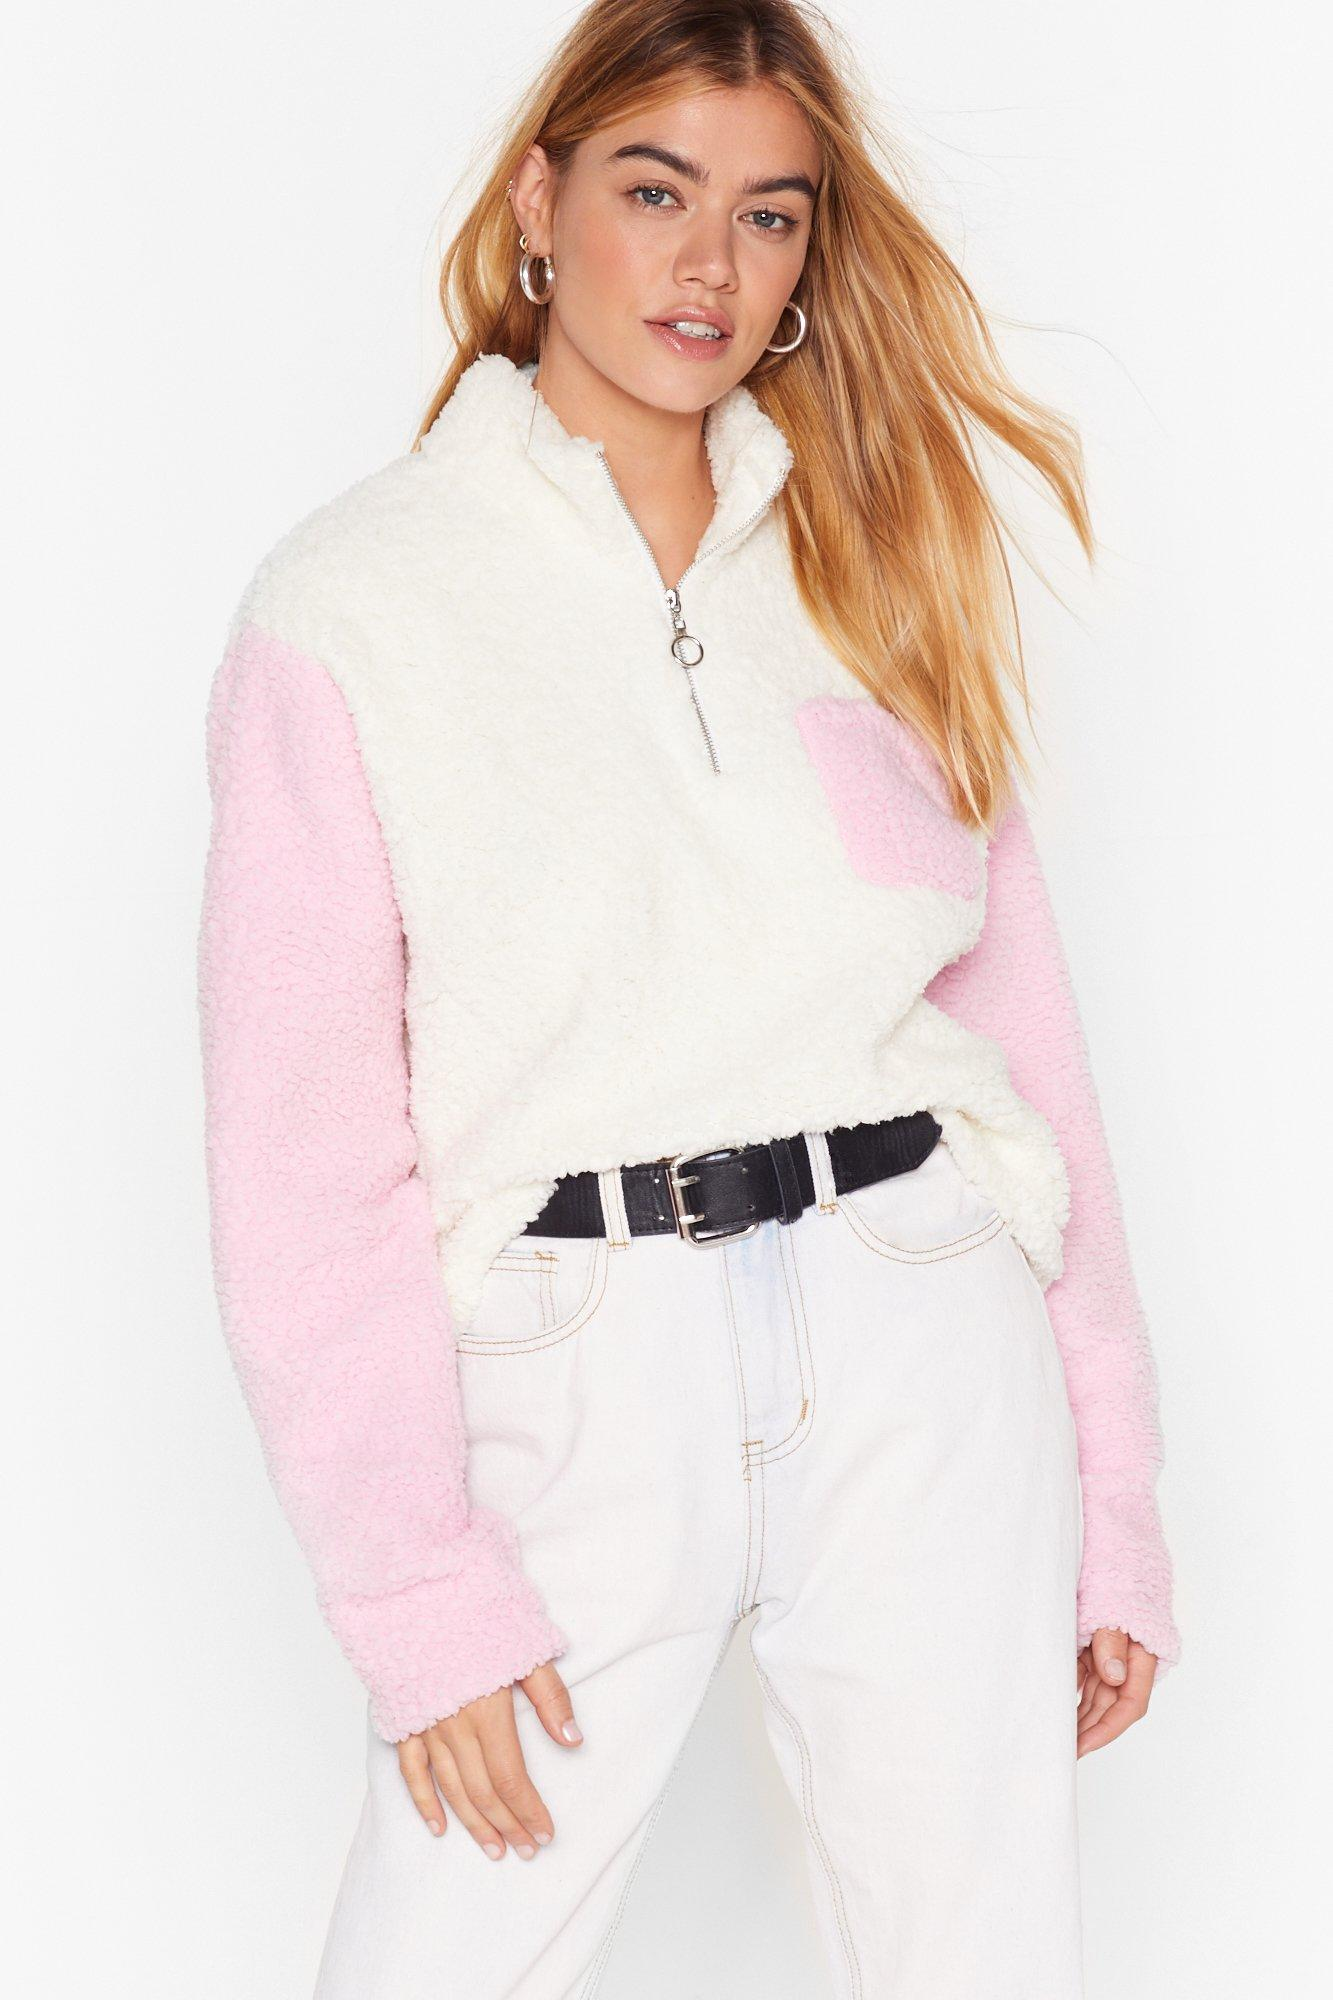 Image of New Kid on the Colorblock Faux Shearling Sweater